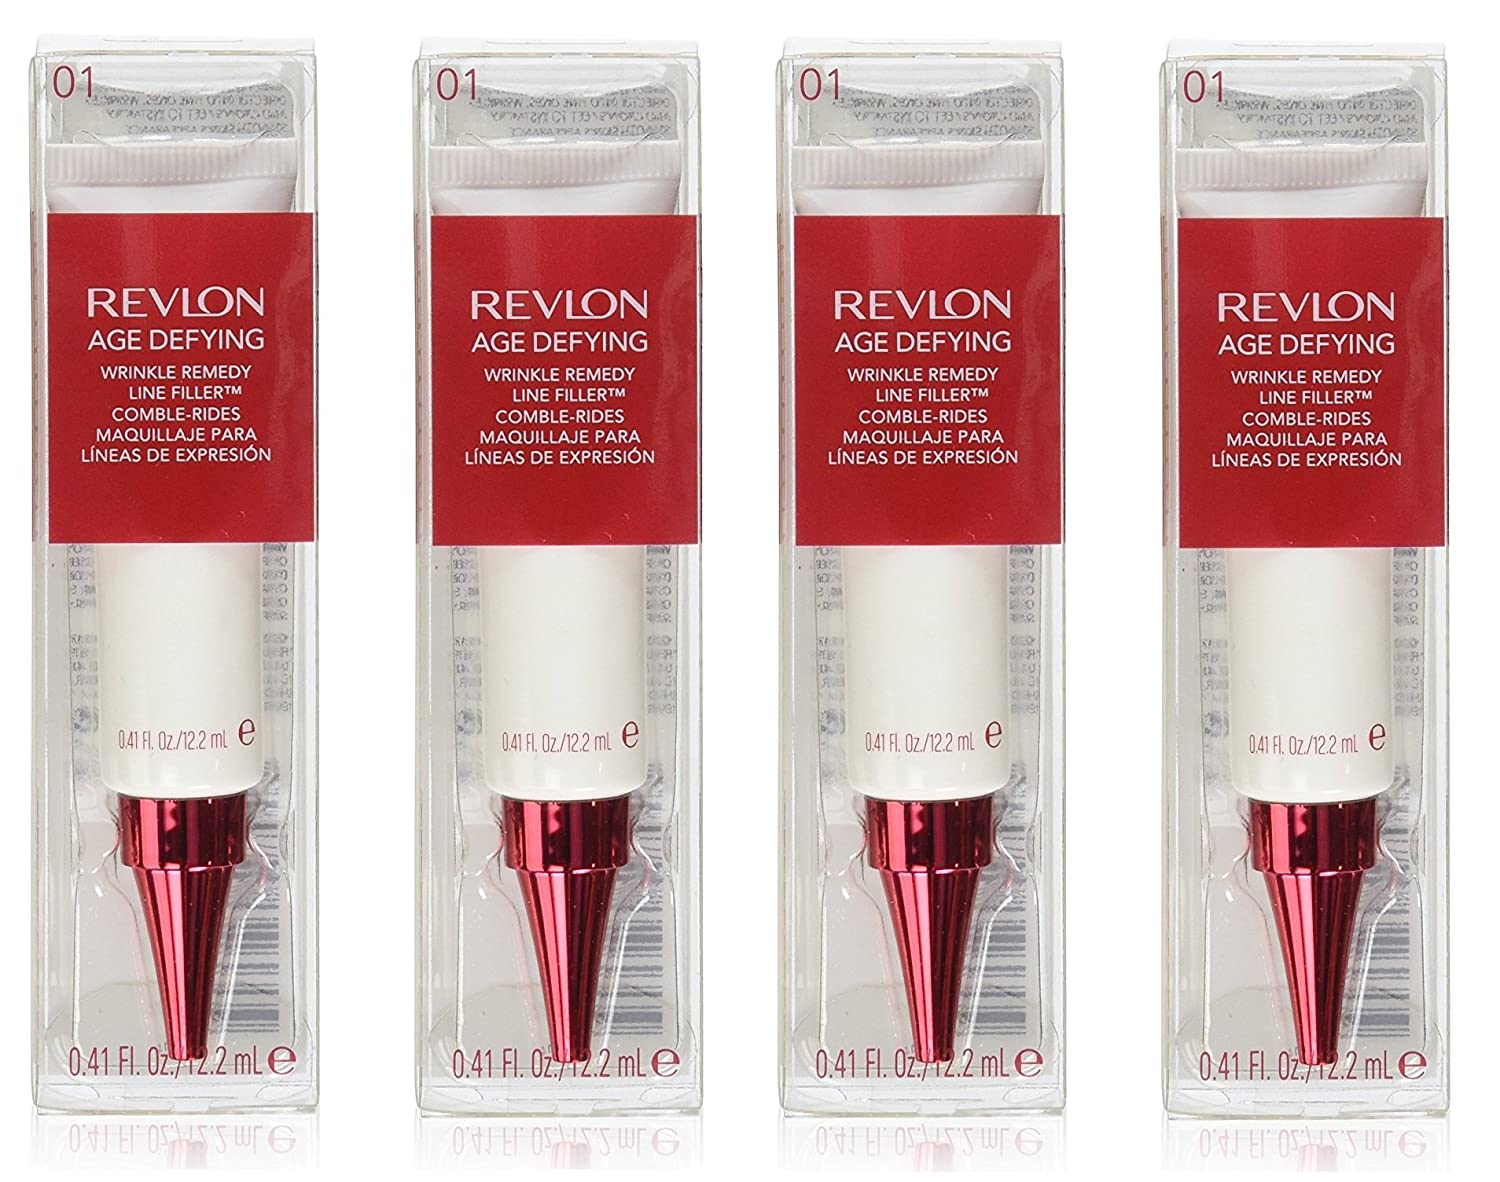 Revlon Age Defying Wrinkle Remedy Line Filler, 0.41 Oz (Pack of 4) + FREE Old Spice Deadlock Spiking Glue, Travel Size, .84 Oz